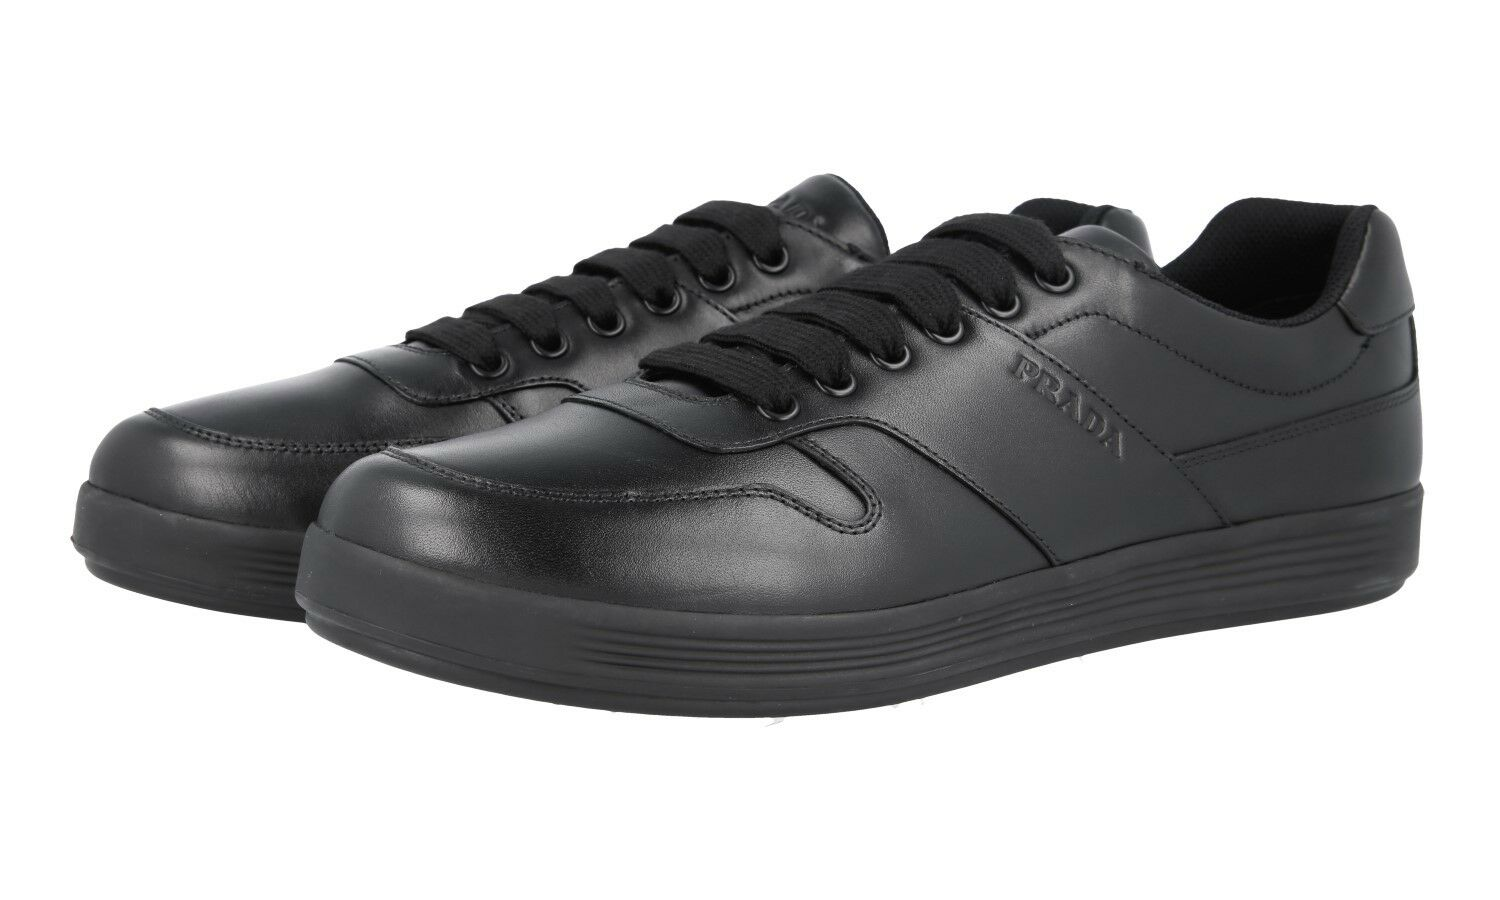 AUTH LUXURY PRADA TRAINERS SHOES 4E3367 BLACK NEW 8,5 42,5 43